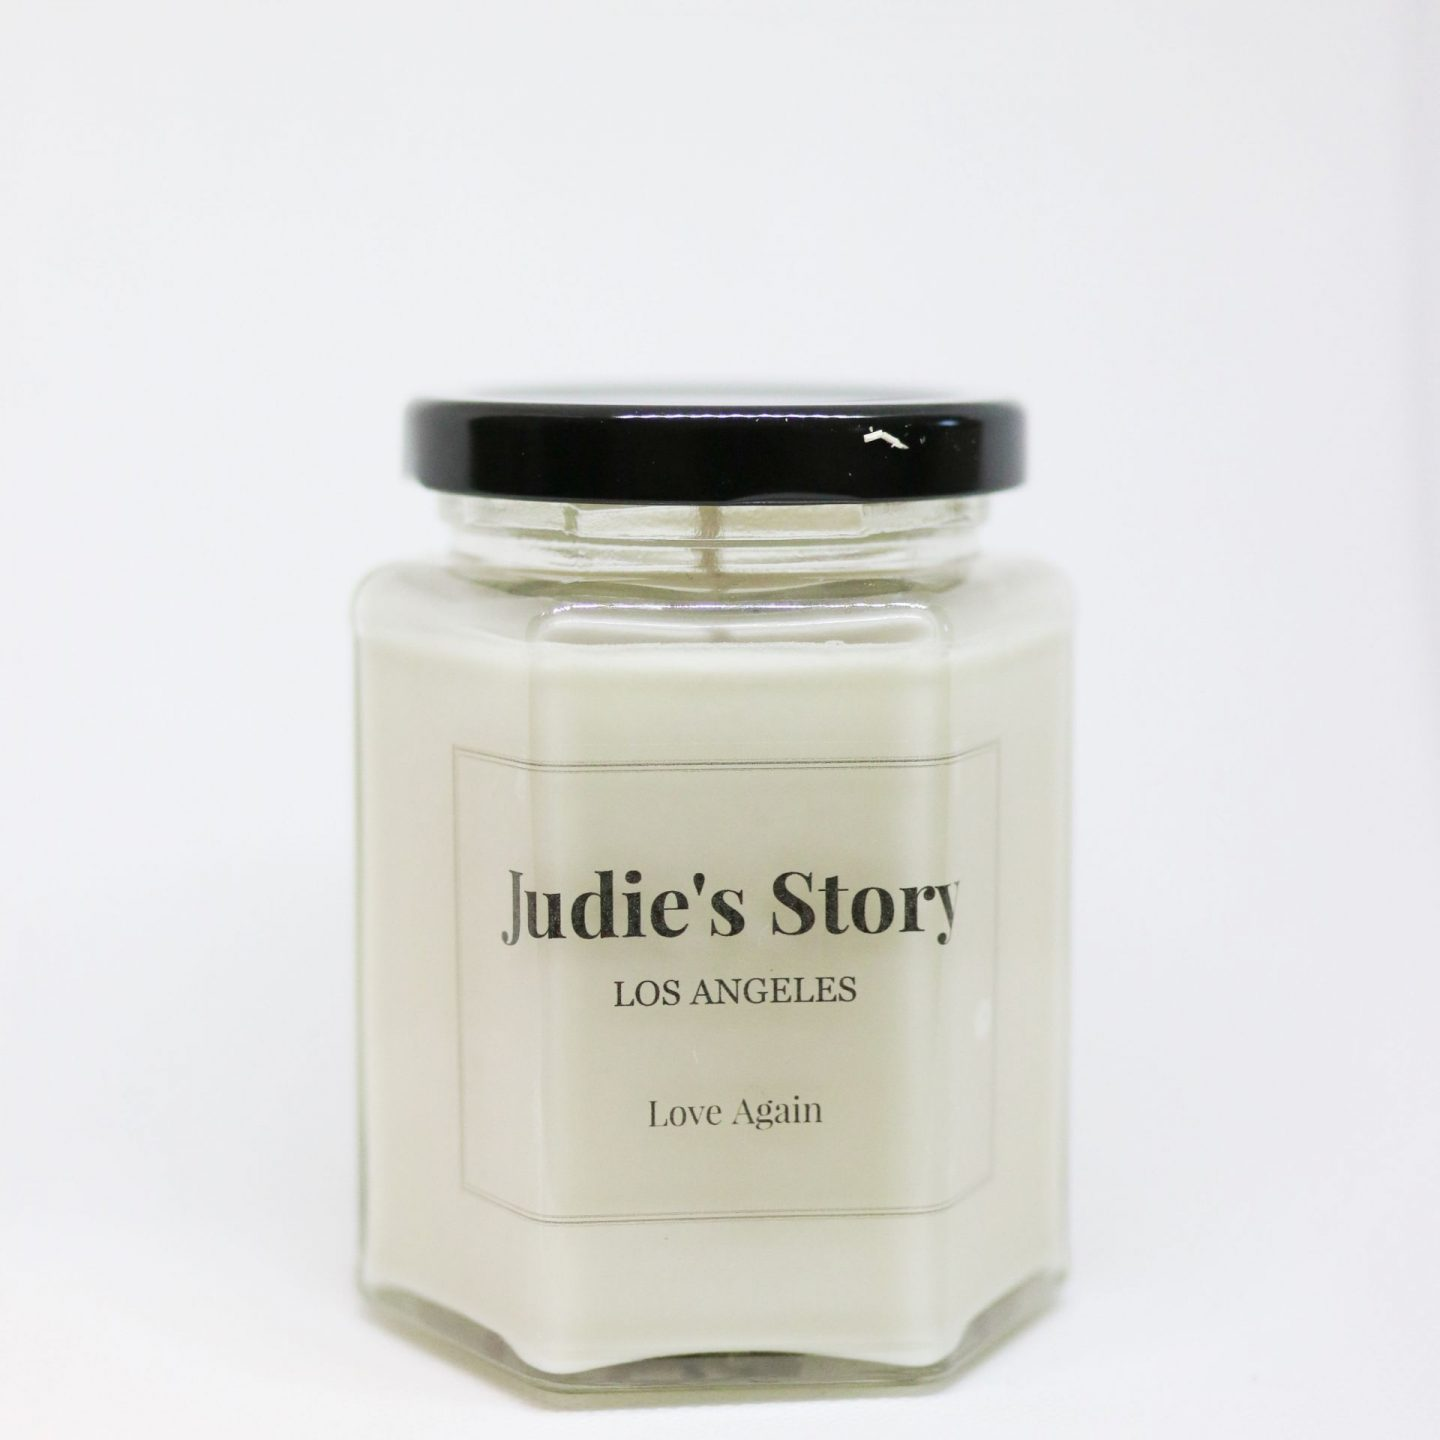 judies story candles